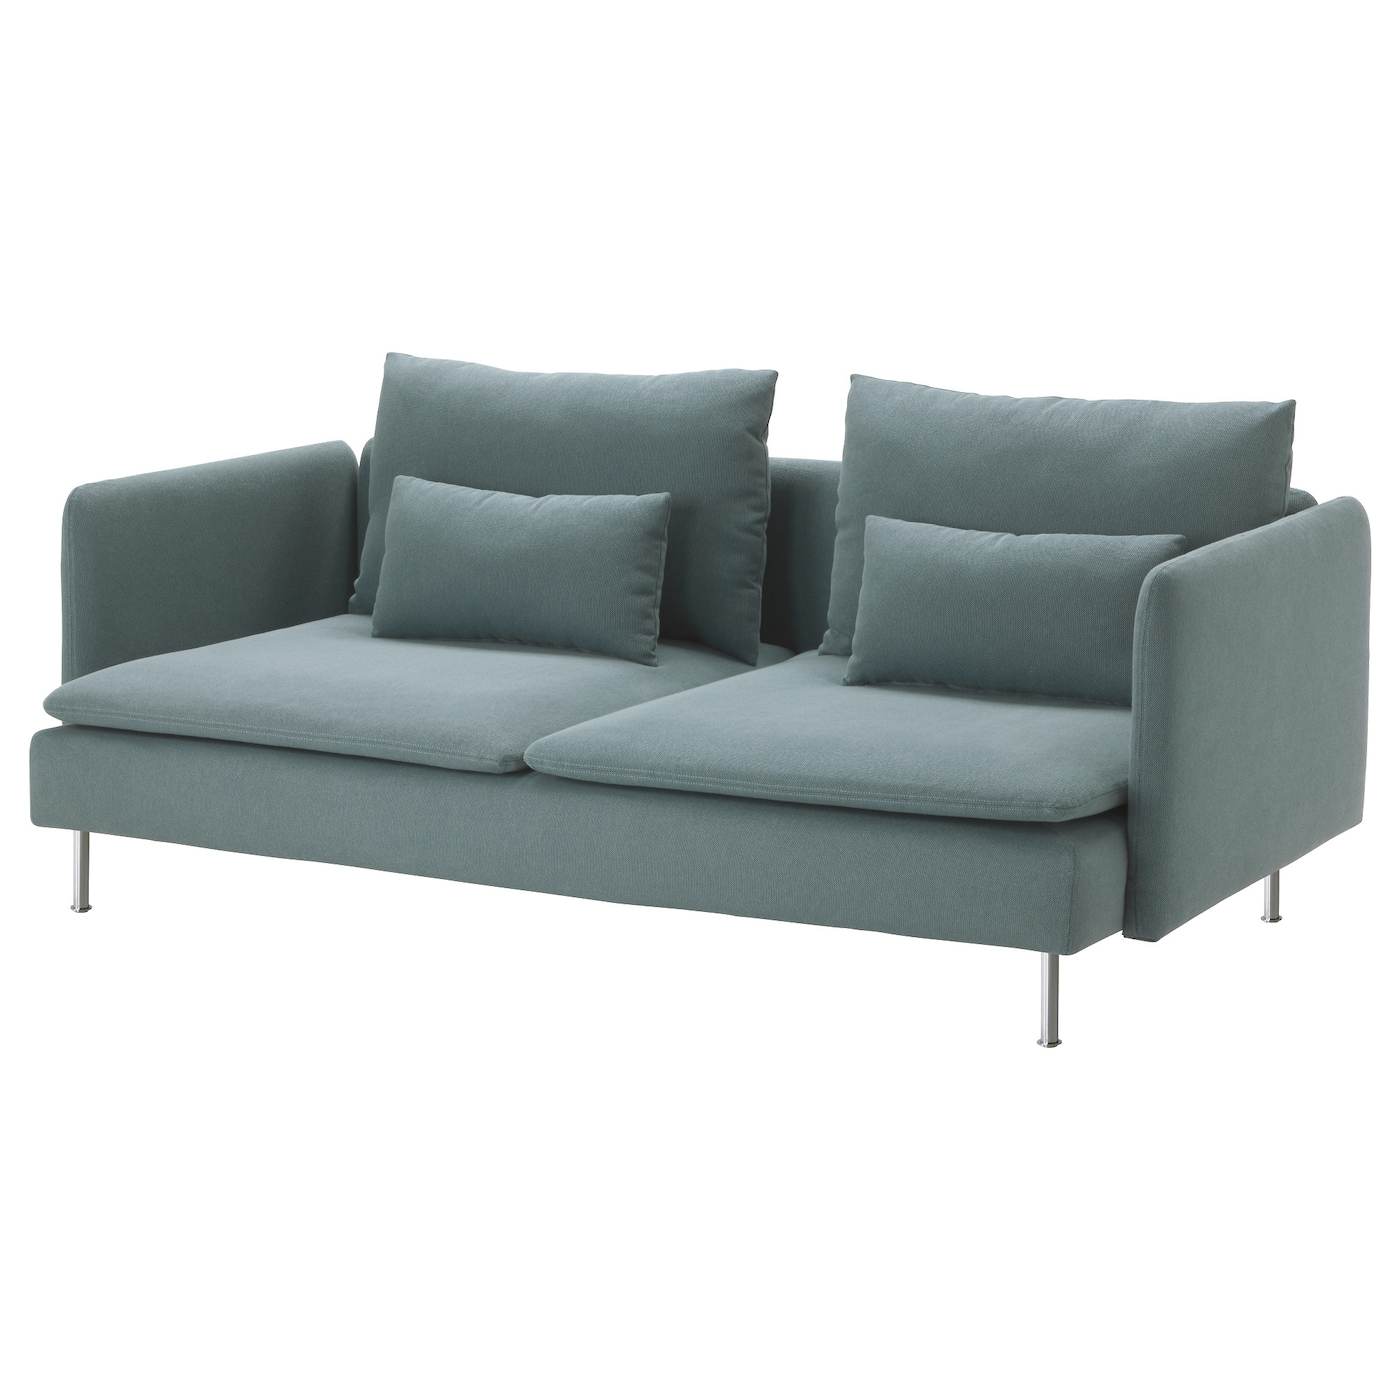 Ikea SÖderhamn 3 Seat Sofa 10 Year Guarantee Read About The Terms In